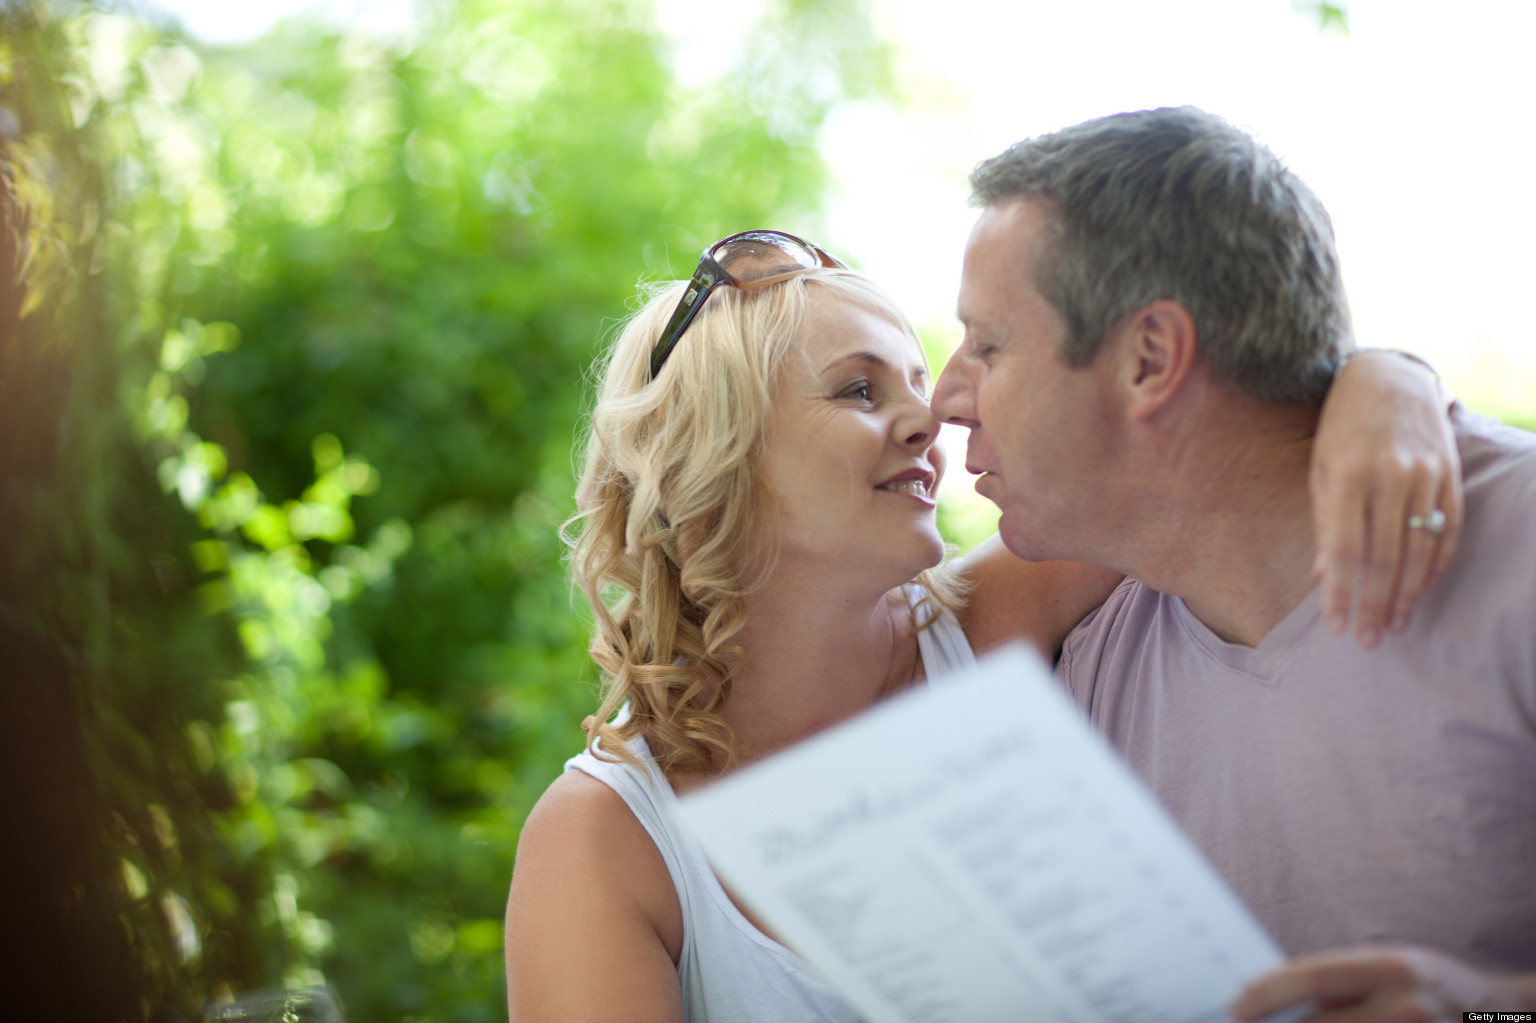 Dating sites for over 50 in us